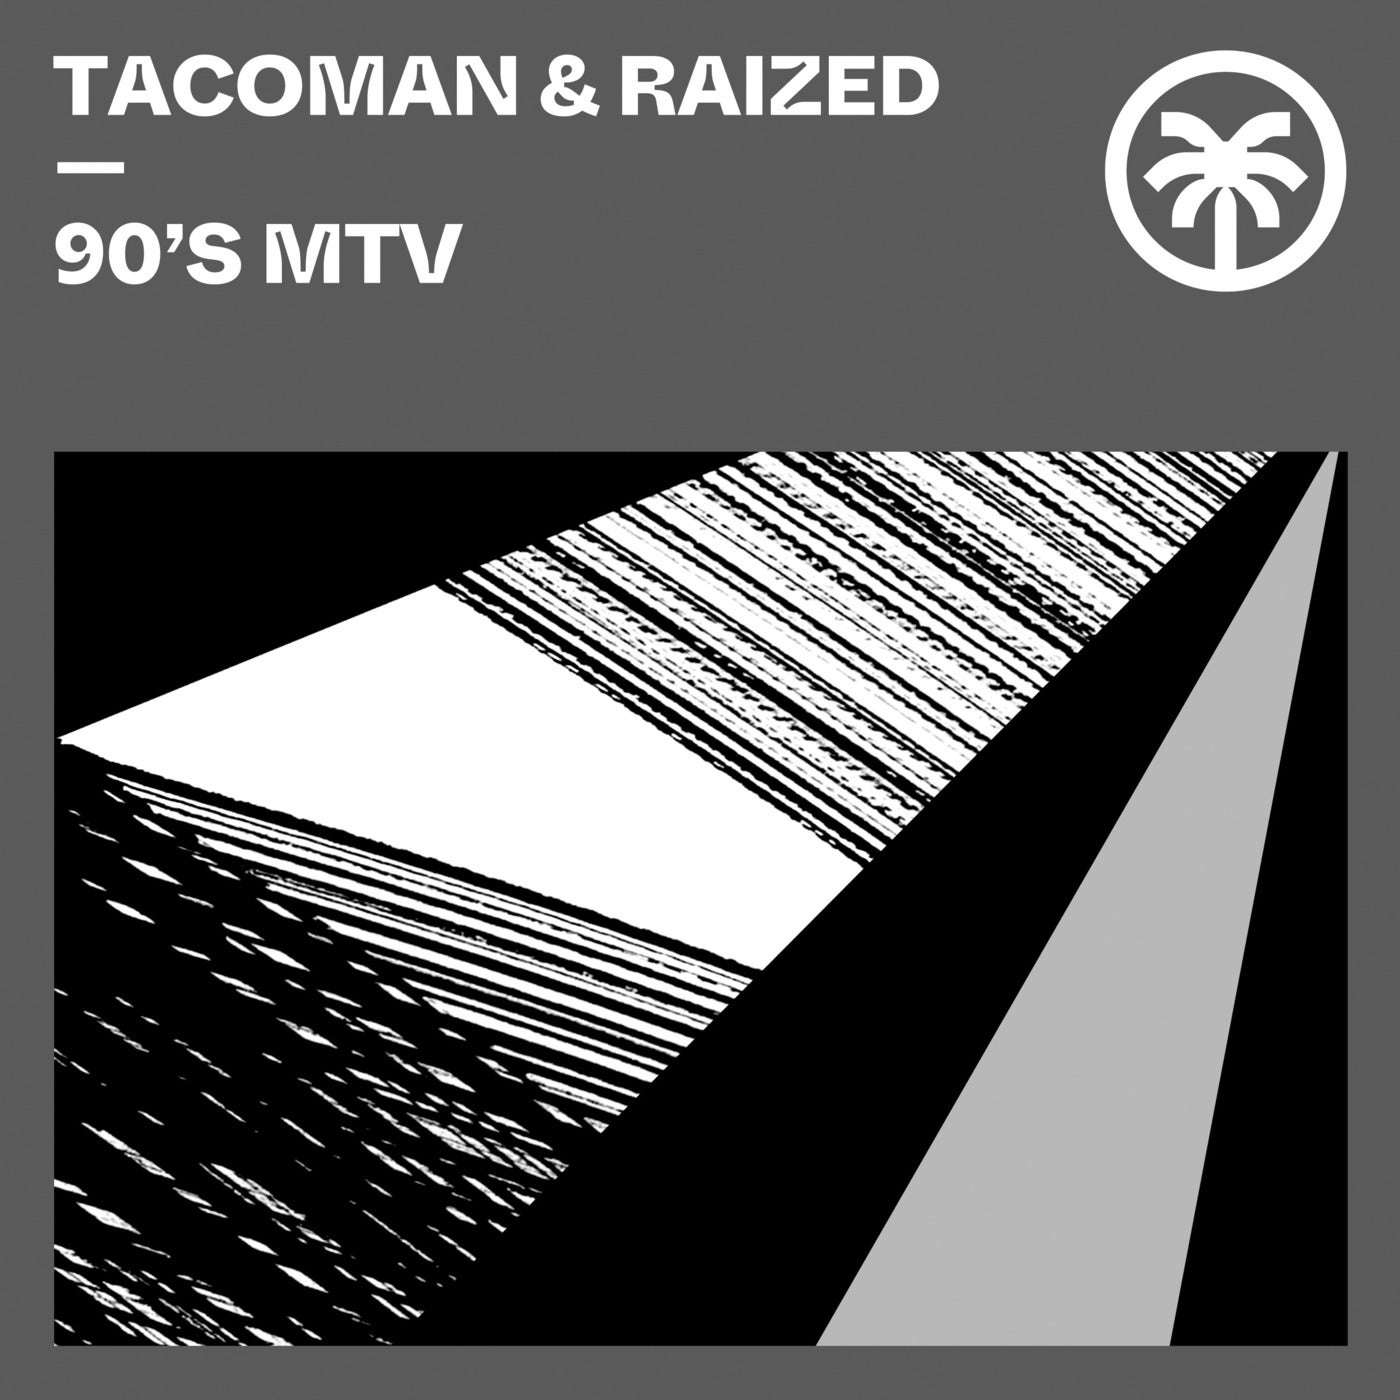 Download 90's MTV on Electrobuzz